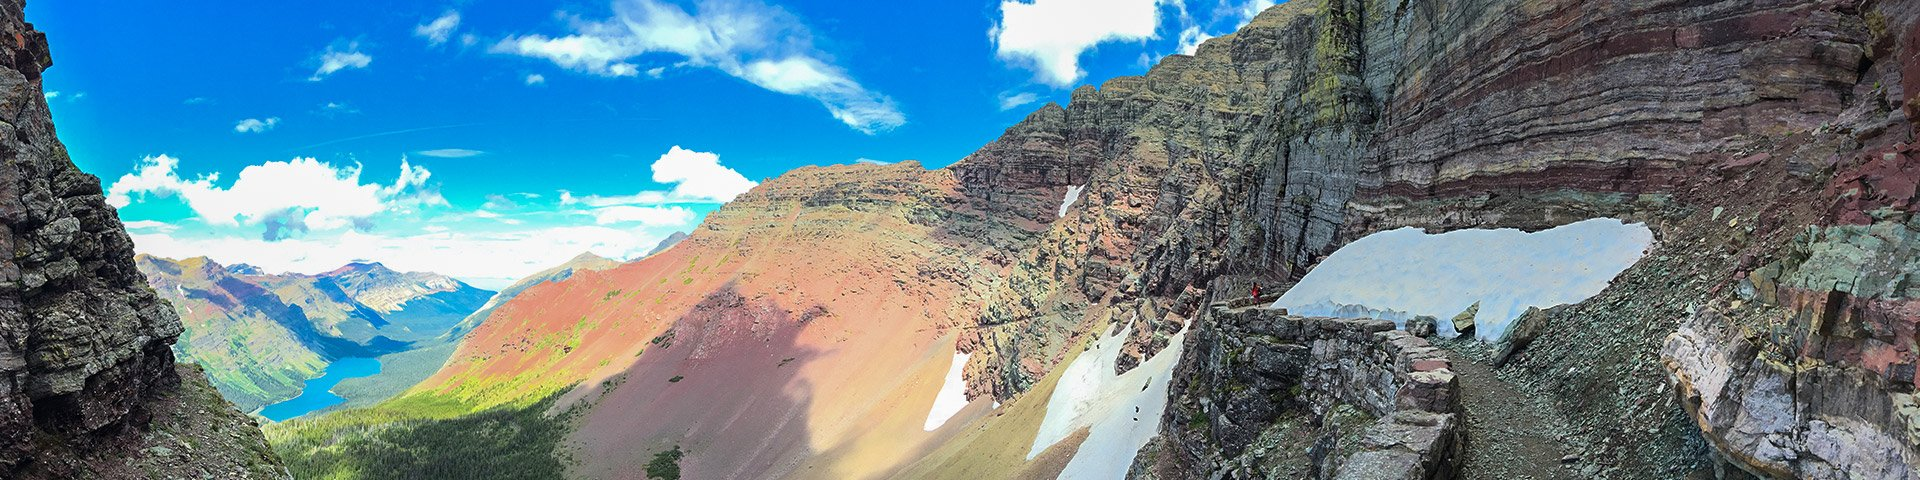 Panorama from the Ptarmigan Tunnel hike in Glacier National Park, Montana